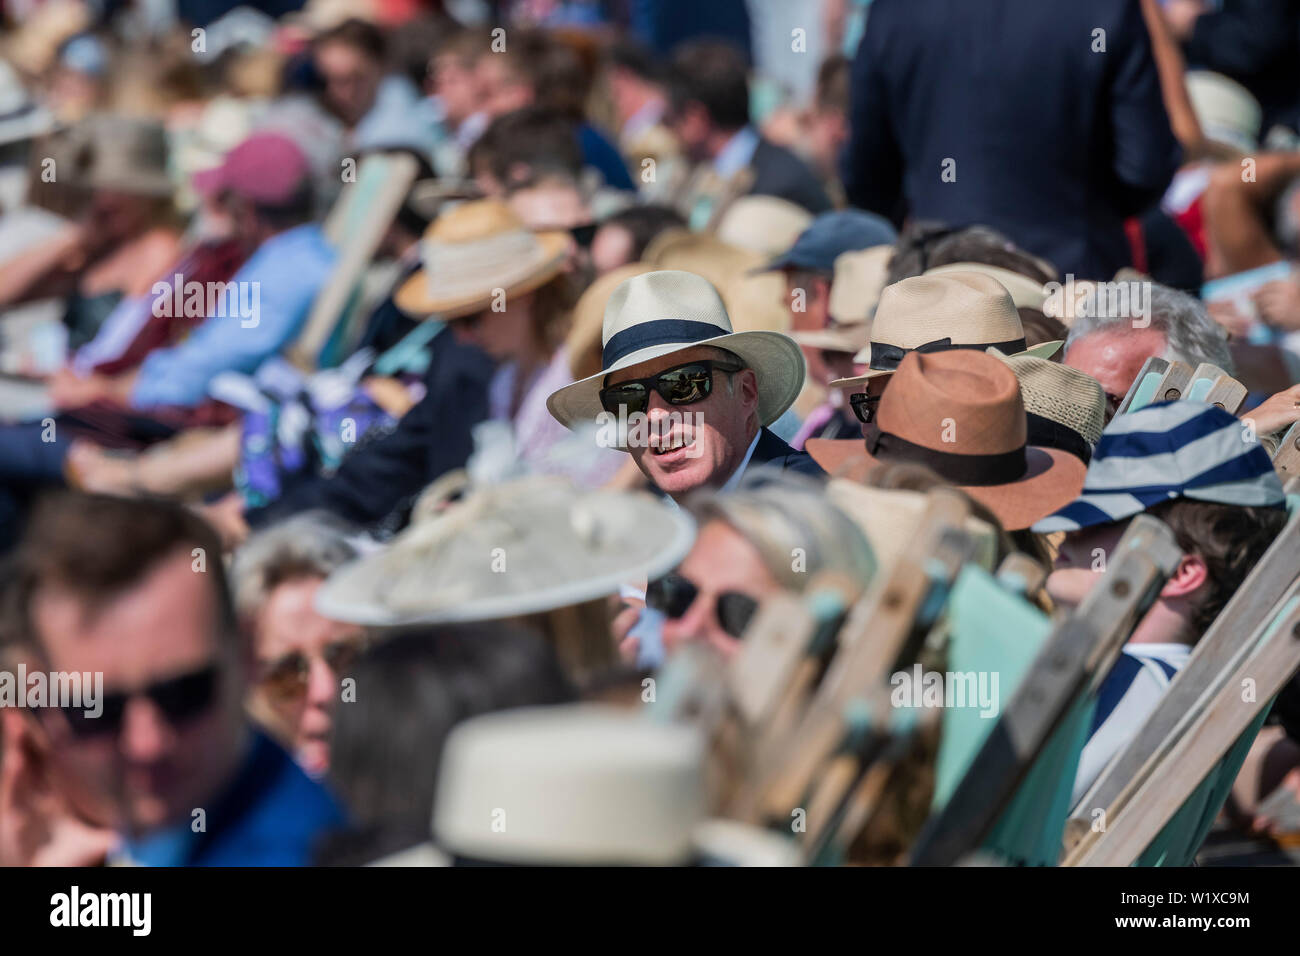 Henley-on-Thames, UK. 3rd July 2019. Spectators relax in deckchairs along the river bank - Rowing at the 2019 Henley Royal Regatta, Henley-on-Thames. Credit: Guy Bell/Alamy Live News - Stock Image